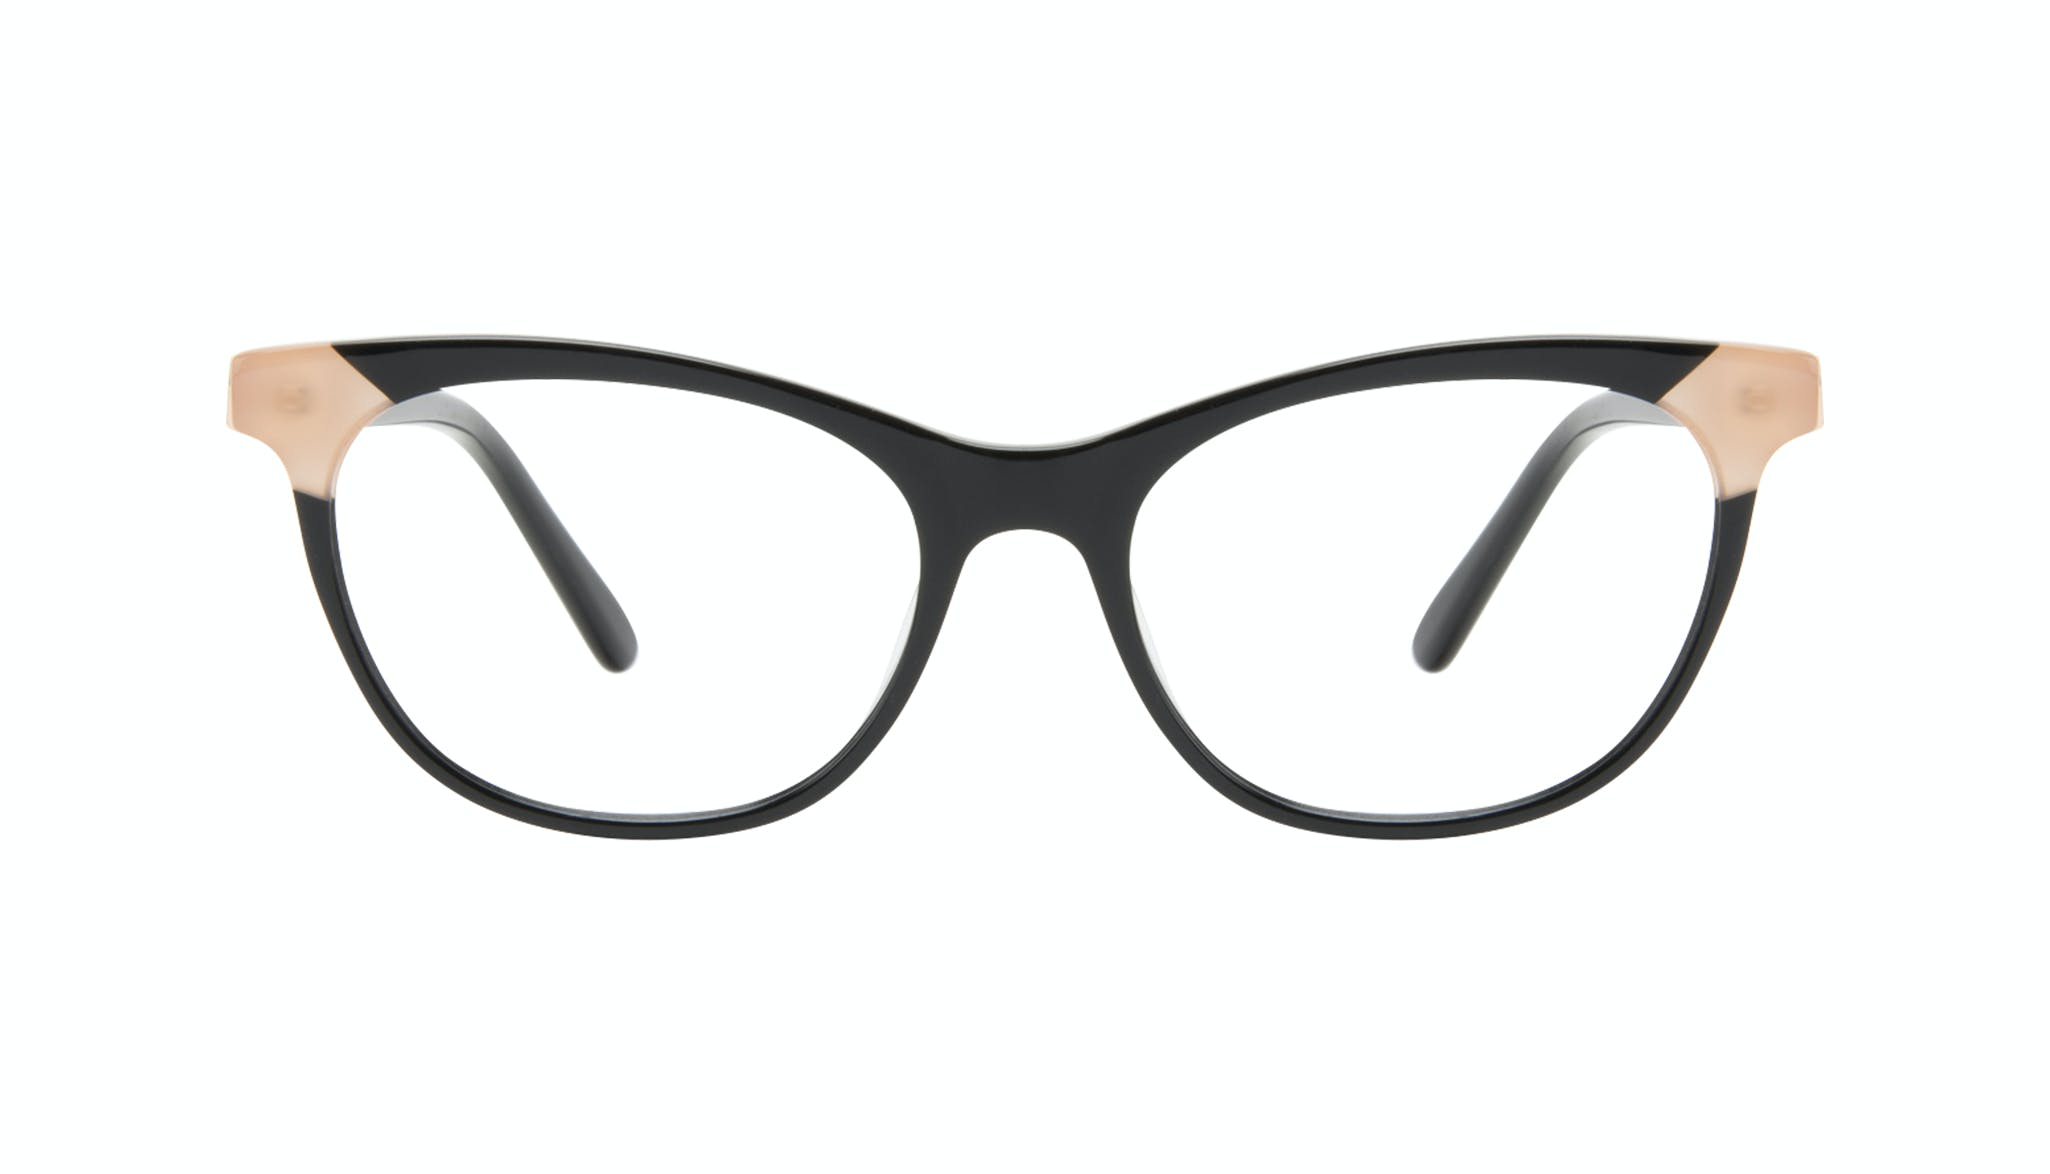 Affordable Fashion Glasses Cat Eye Eyeglasses Women Witty Black Ivory Front